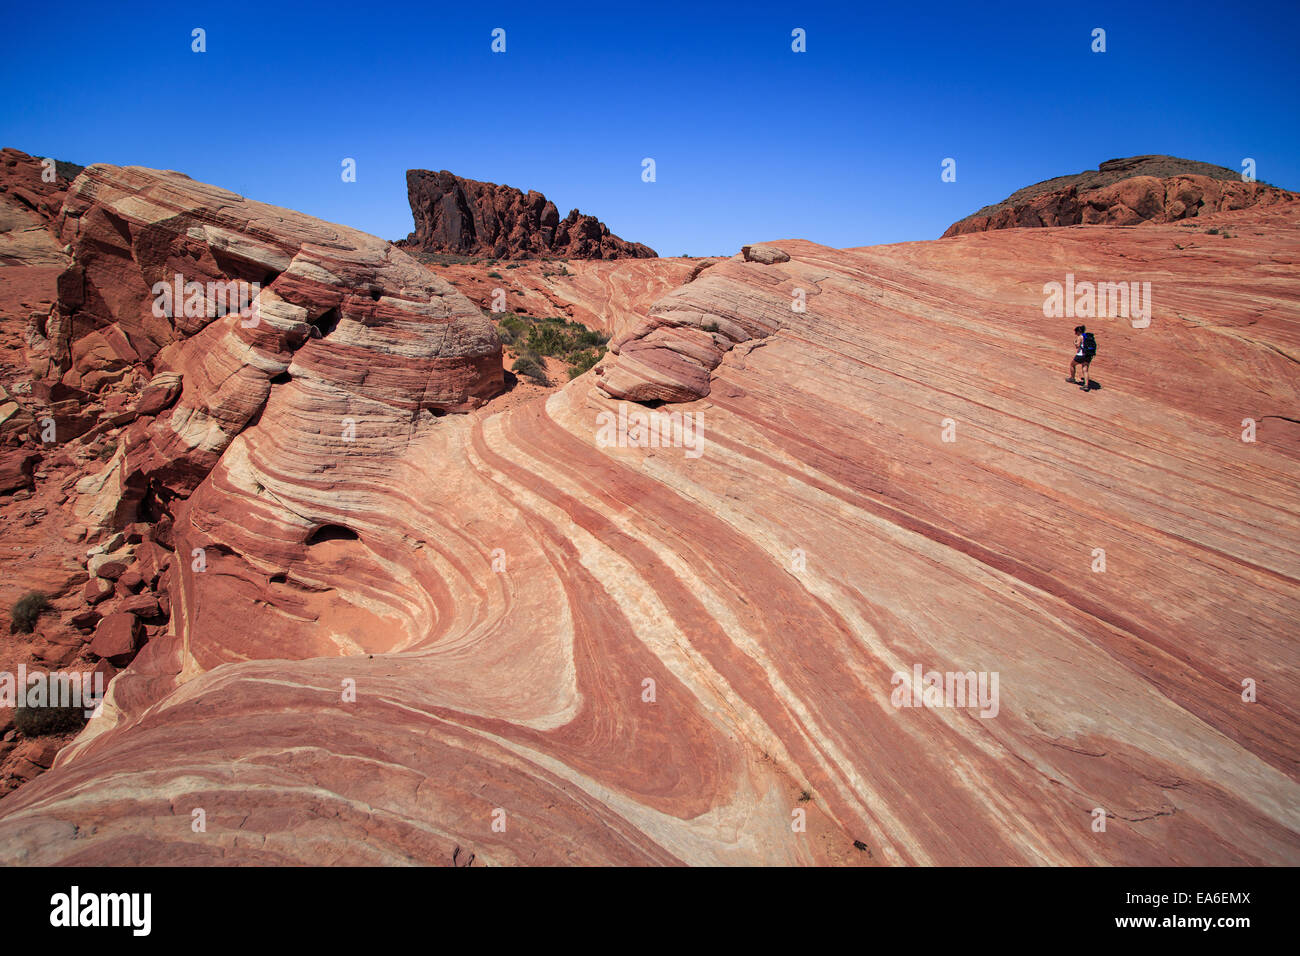 USA, Nevada, Clark County, White Domes Road, Lone hiker on Fire Wave in Valley of Fire State Park - Stock Image